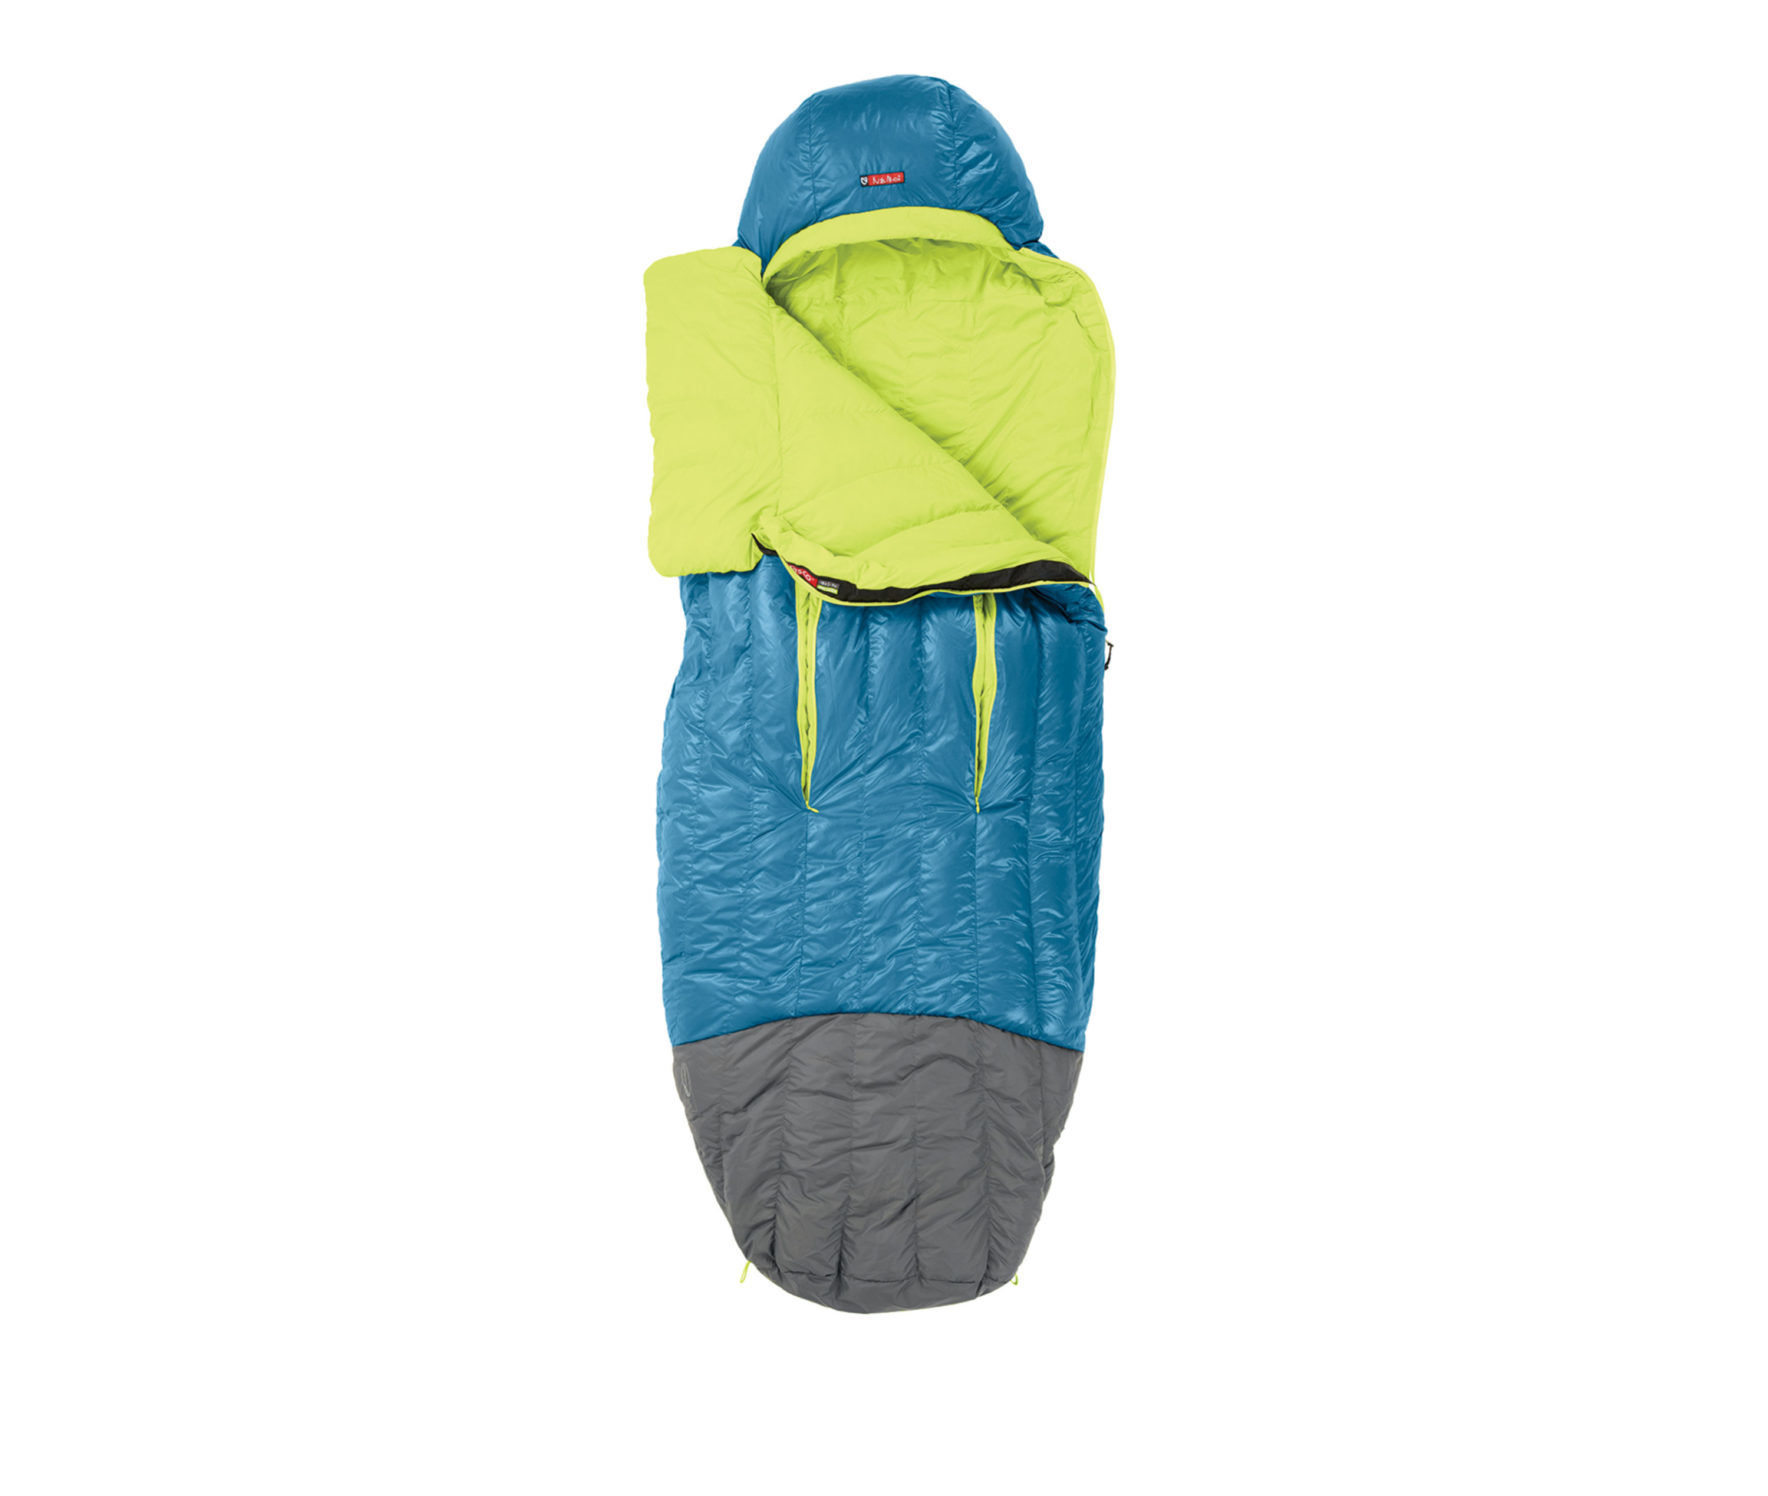 NEMO Disco Men's Down Sleeping Bag